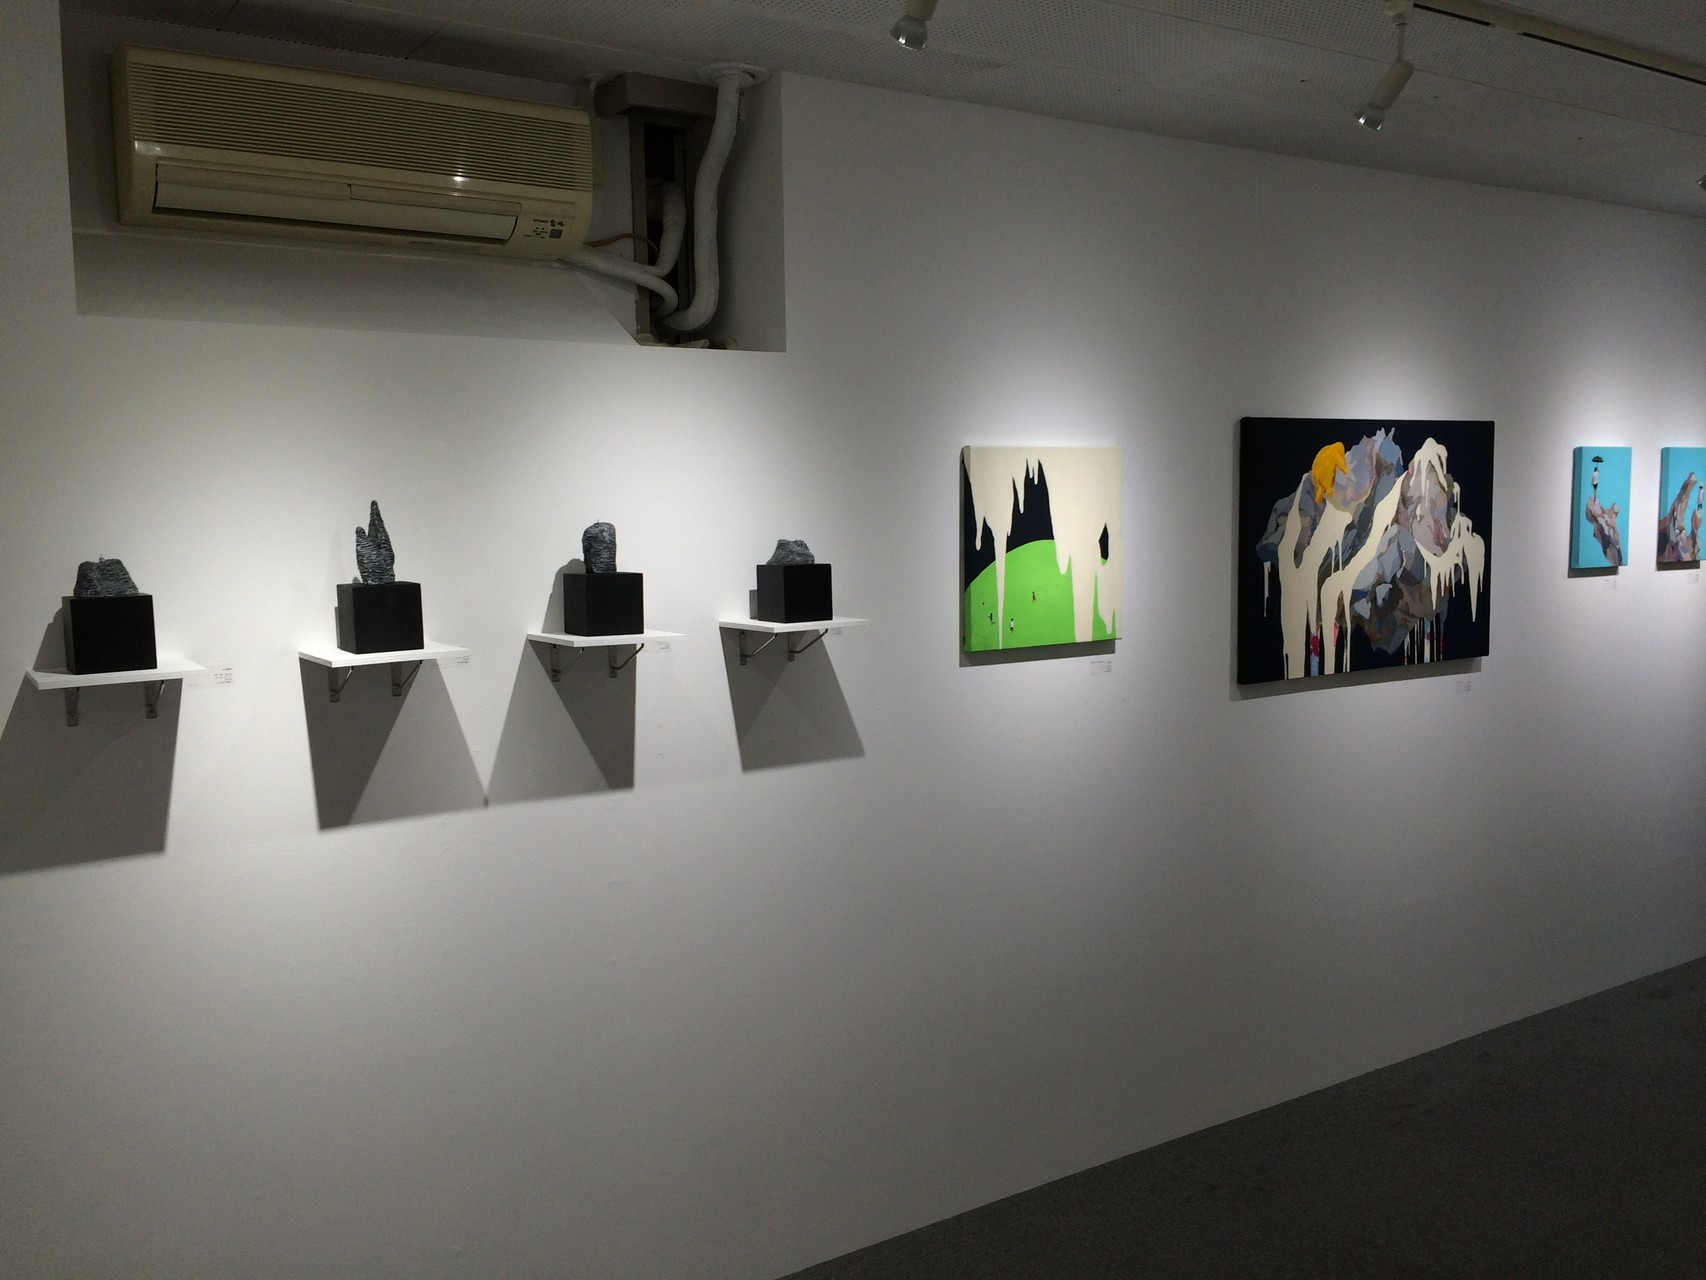 「ART SALON vol4」@JINEN GALLERY 2015.12.15-12.20